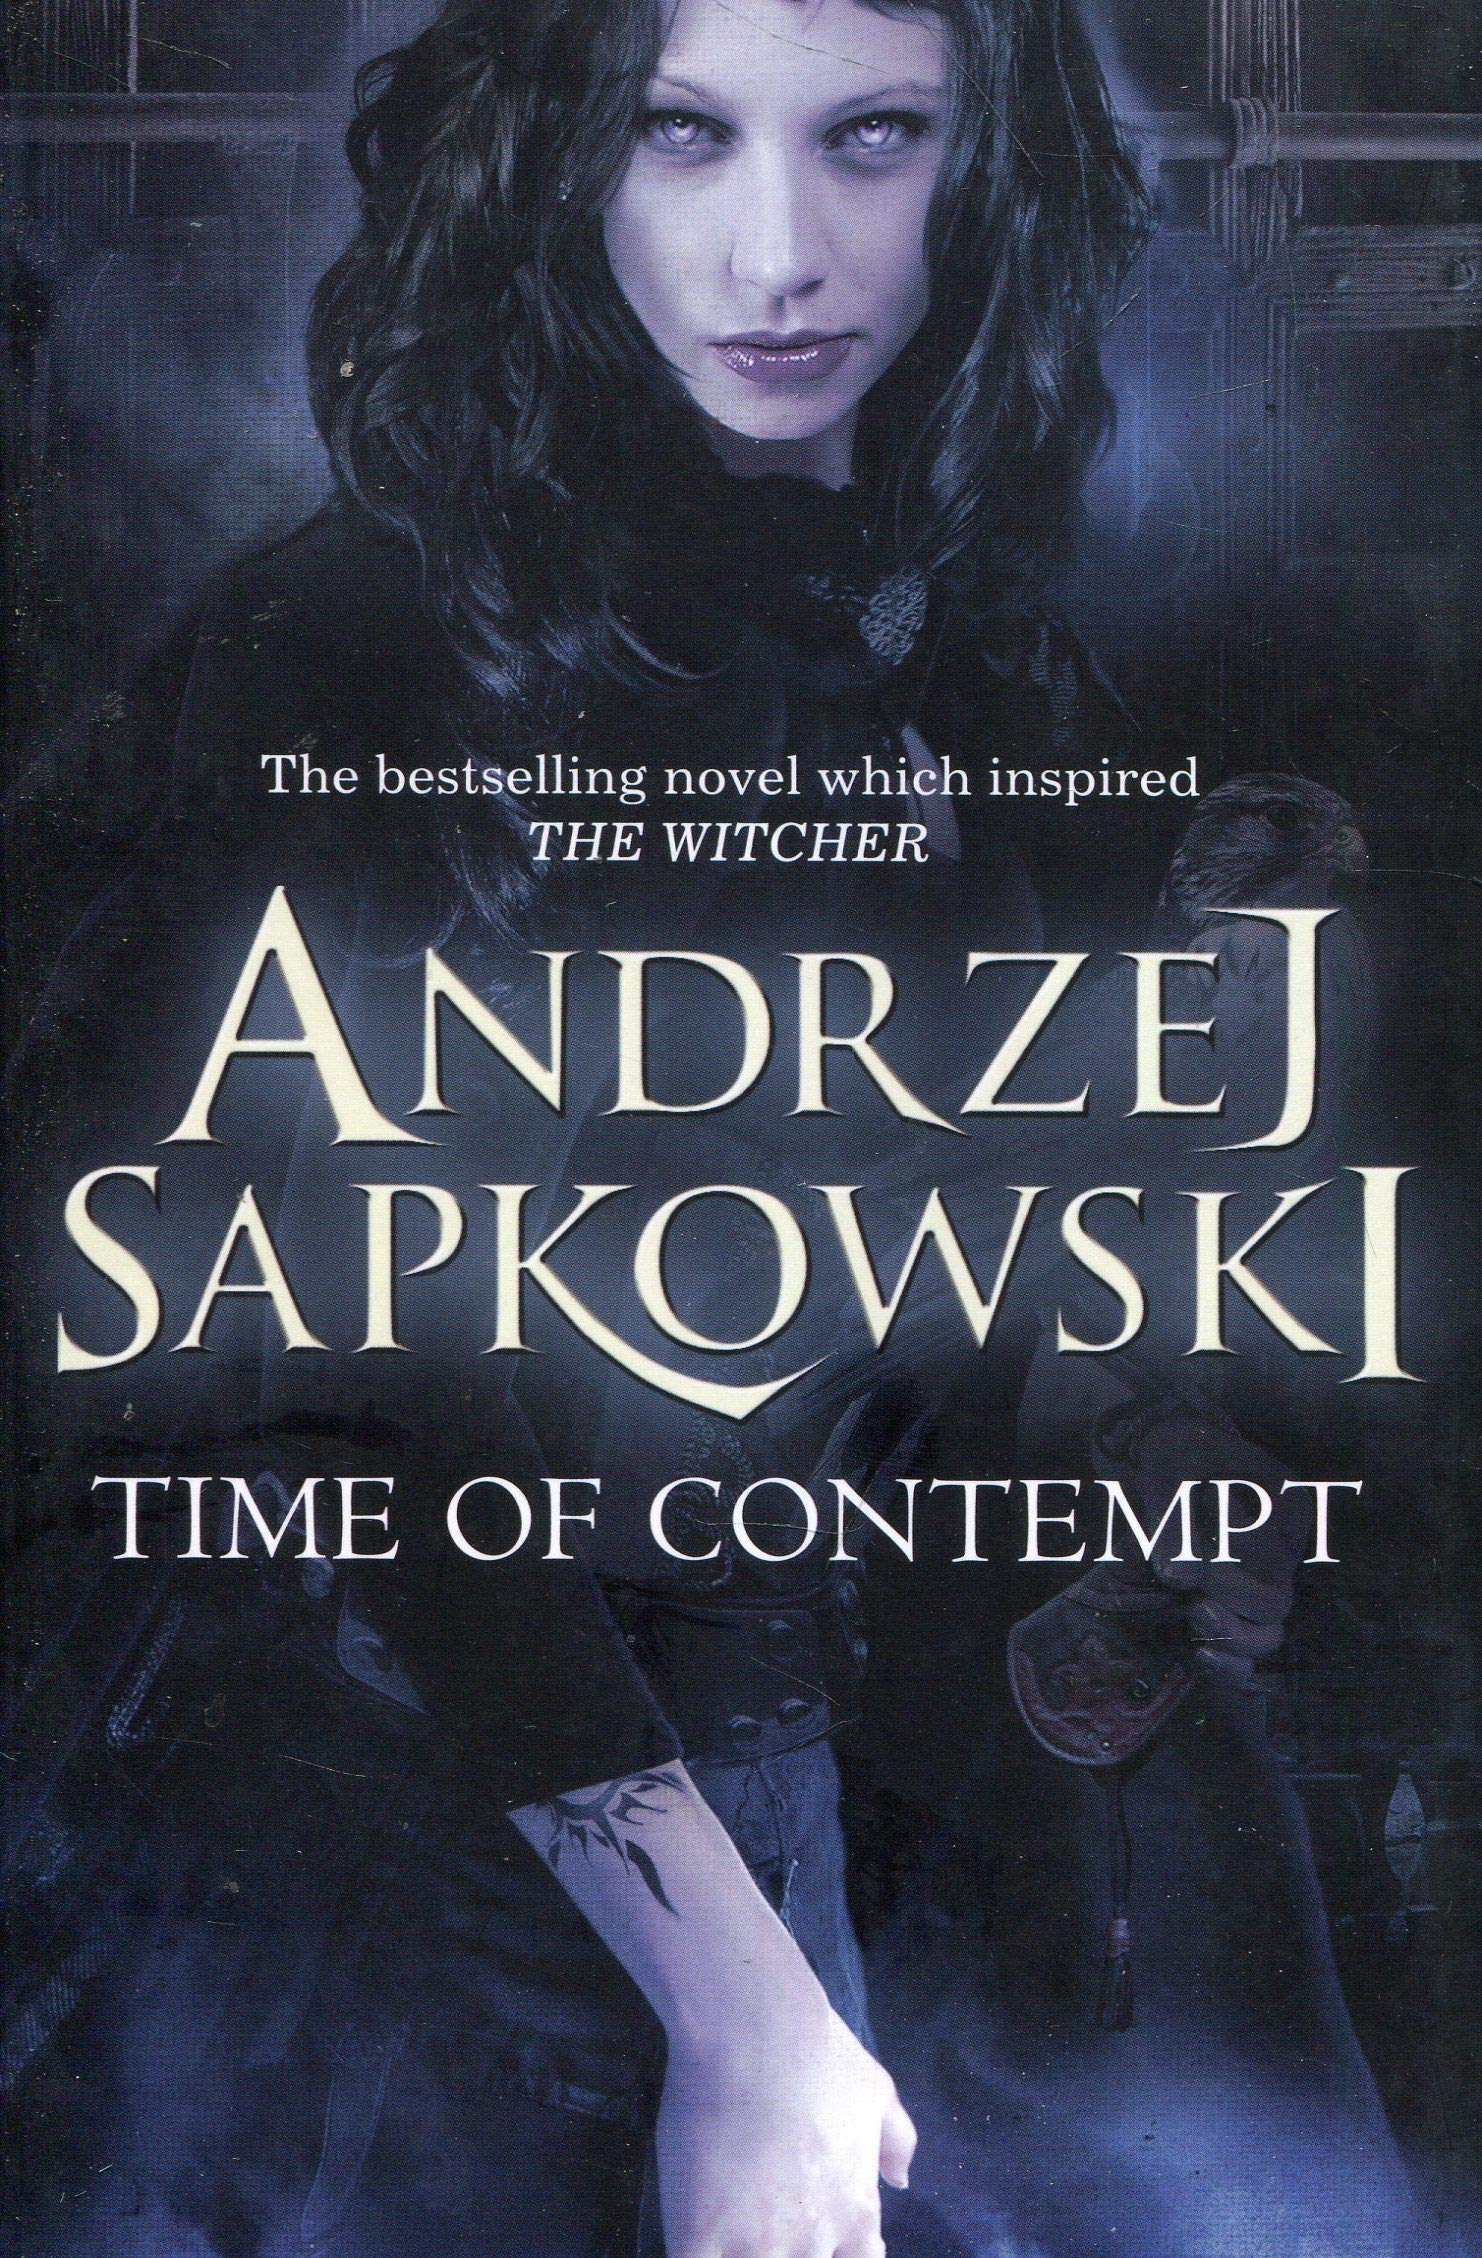 Image result for time of contempt andrzej sapkowski